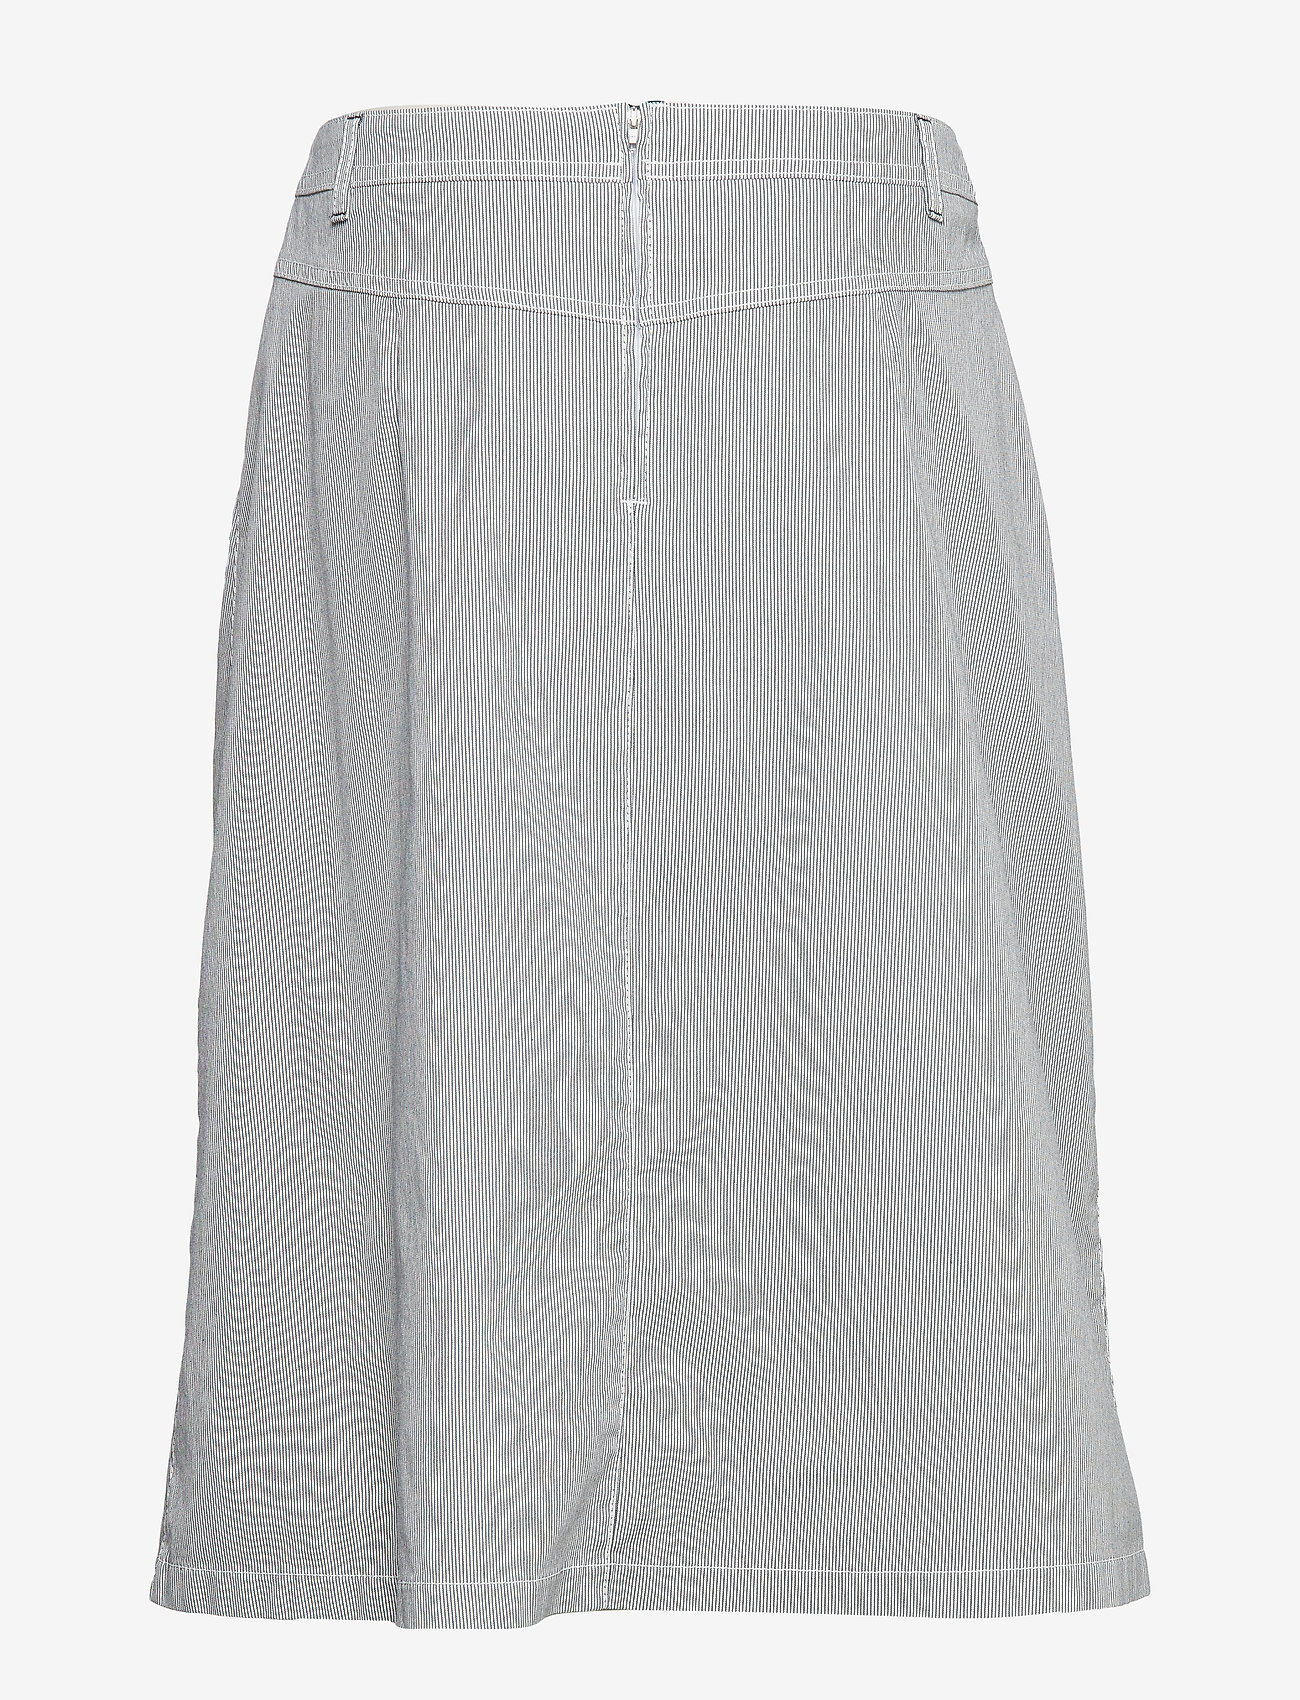 Skirt Long Woven Fab (Blue/white) - Gerry Weber Edition lE3wuE